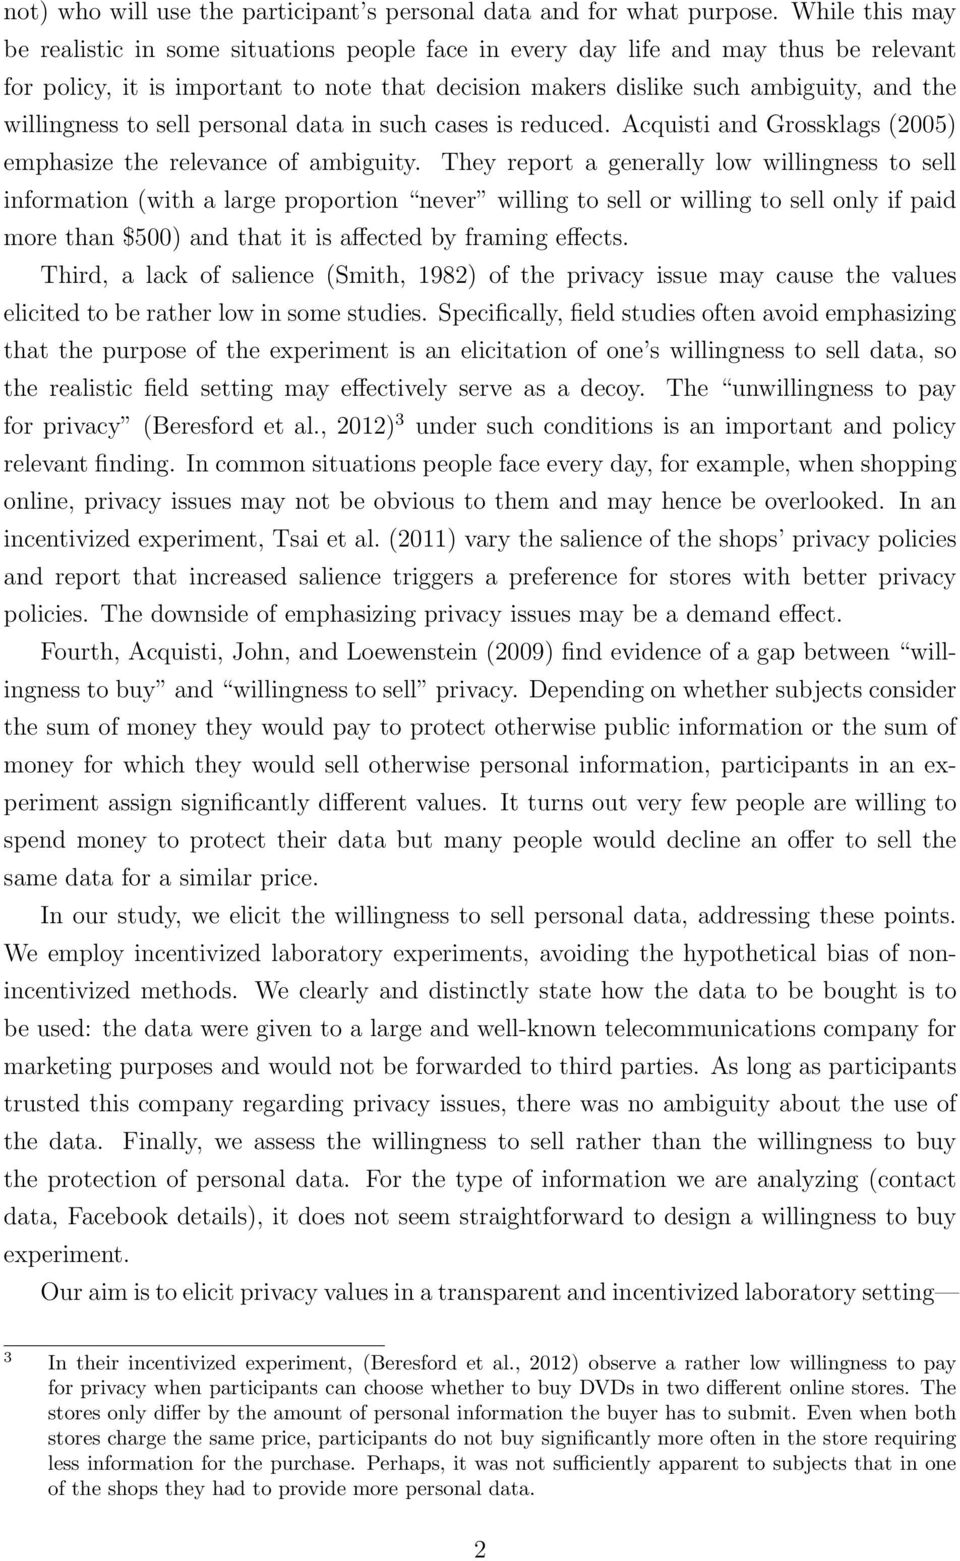 willingness to sell personal data in such cases is reduced. Acquisti and Grossklags (2005) emphasize the relevance of ambiguity.